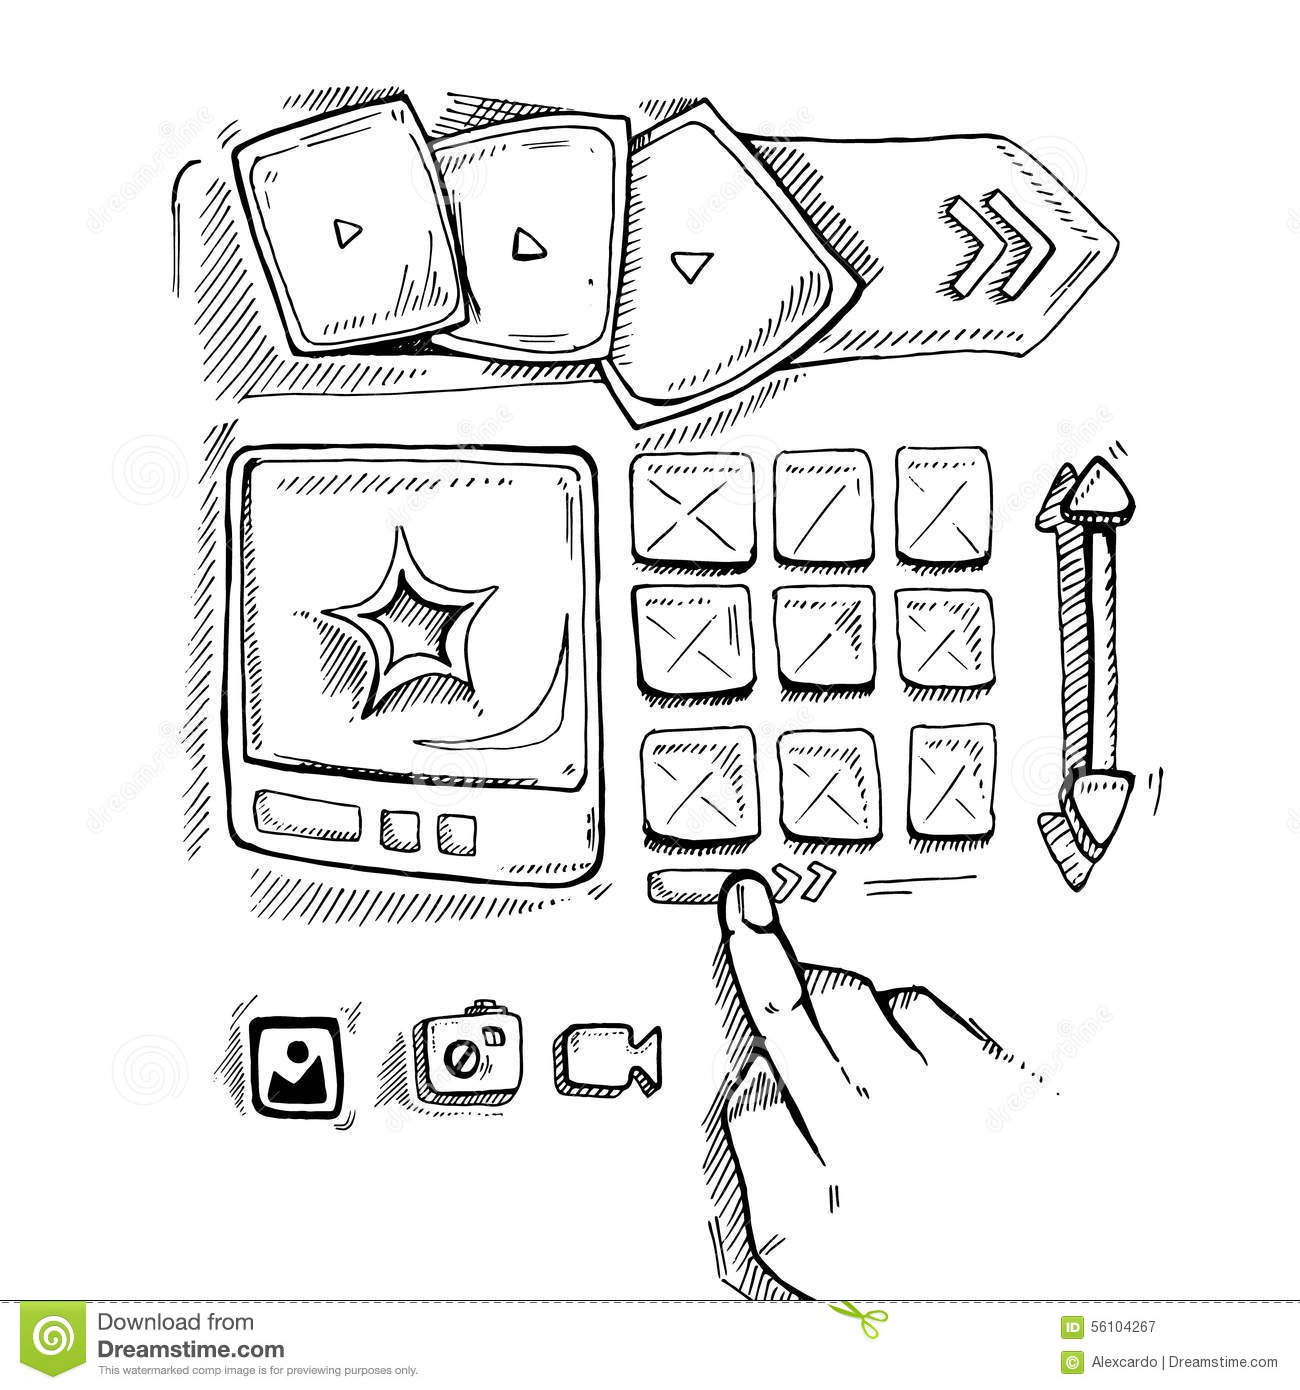 Doodle portfolio wireframe stock vector. Image of